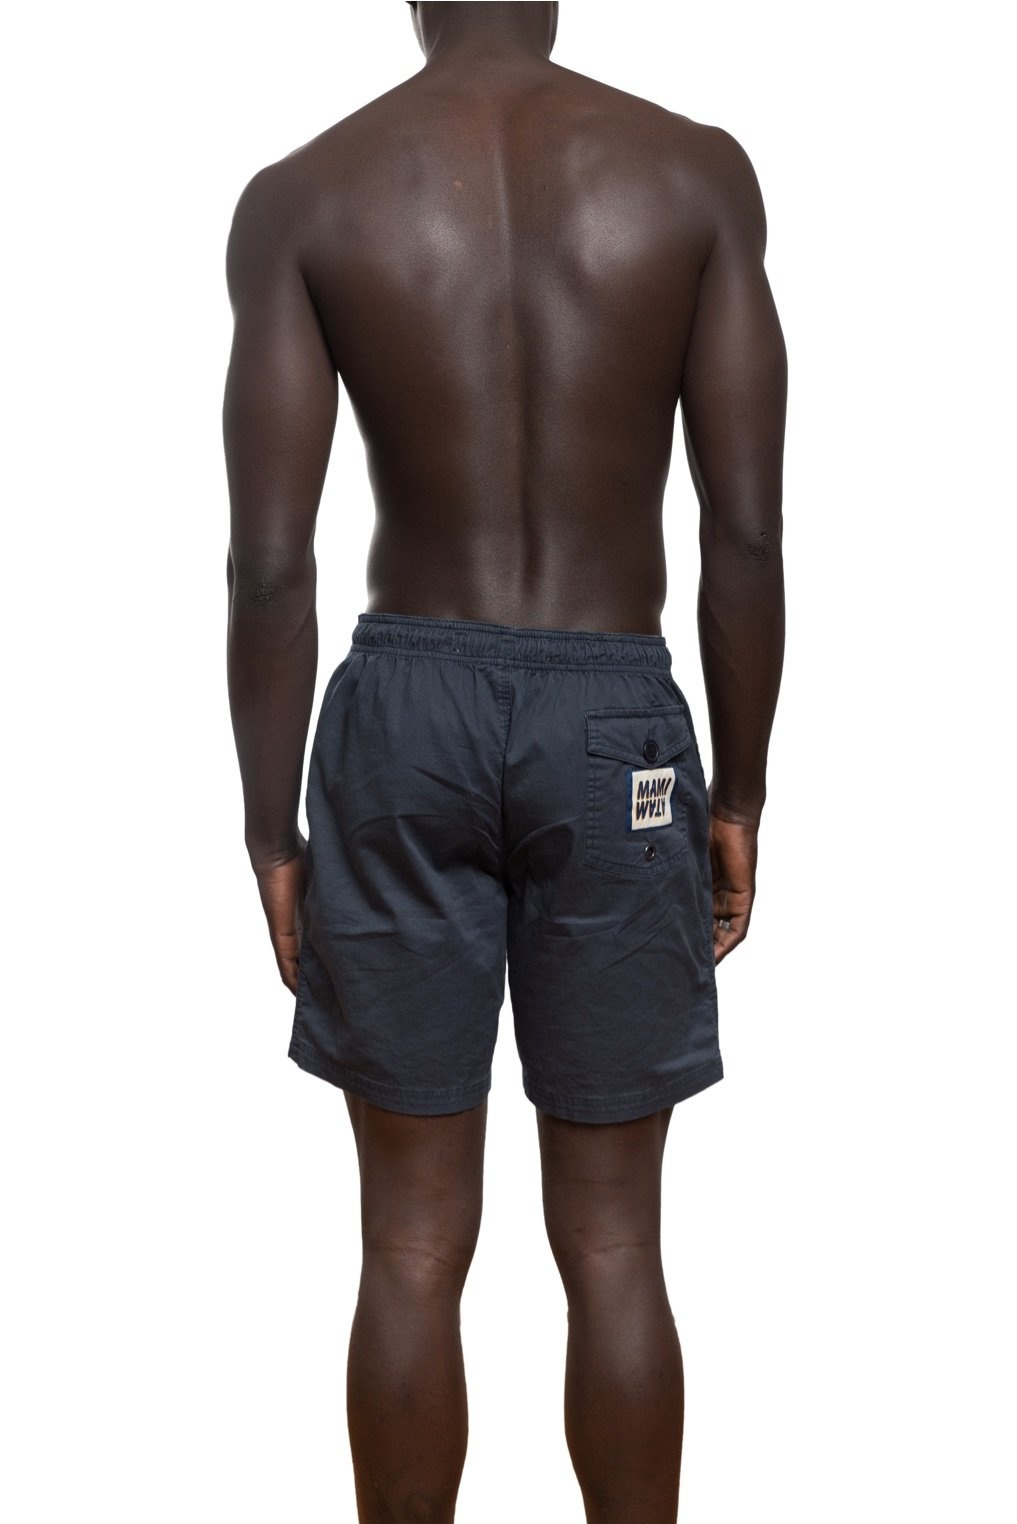 Mami Wata Surf Mami Wata Surf Men's Midnight in Accra Surf Trunk - Midnight Blue